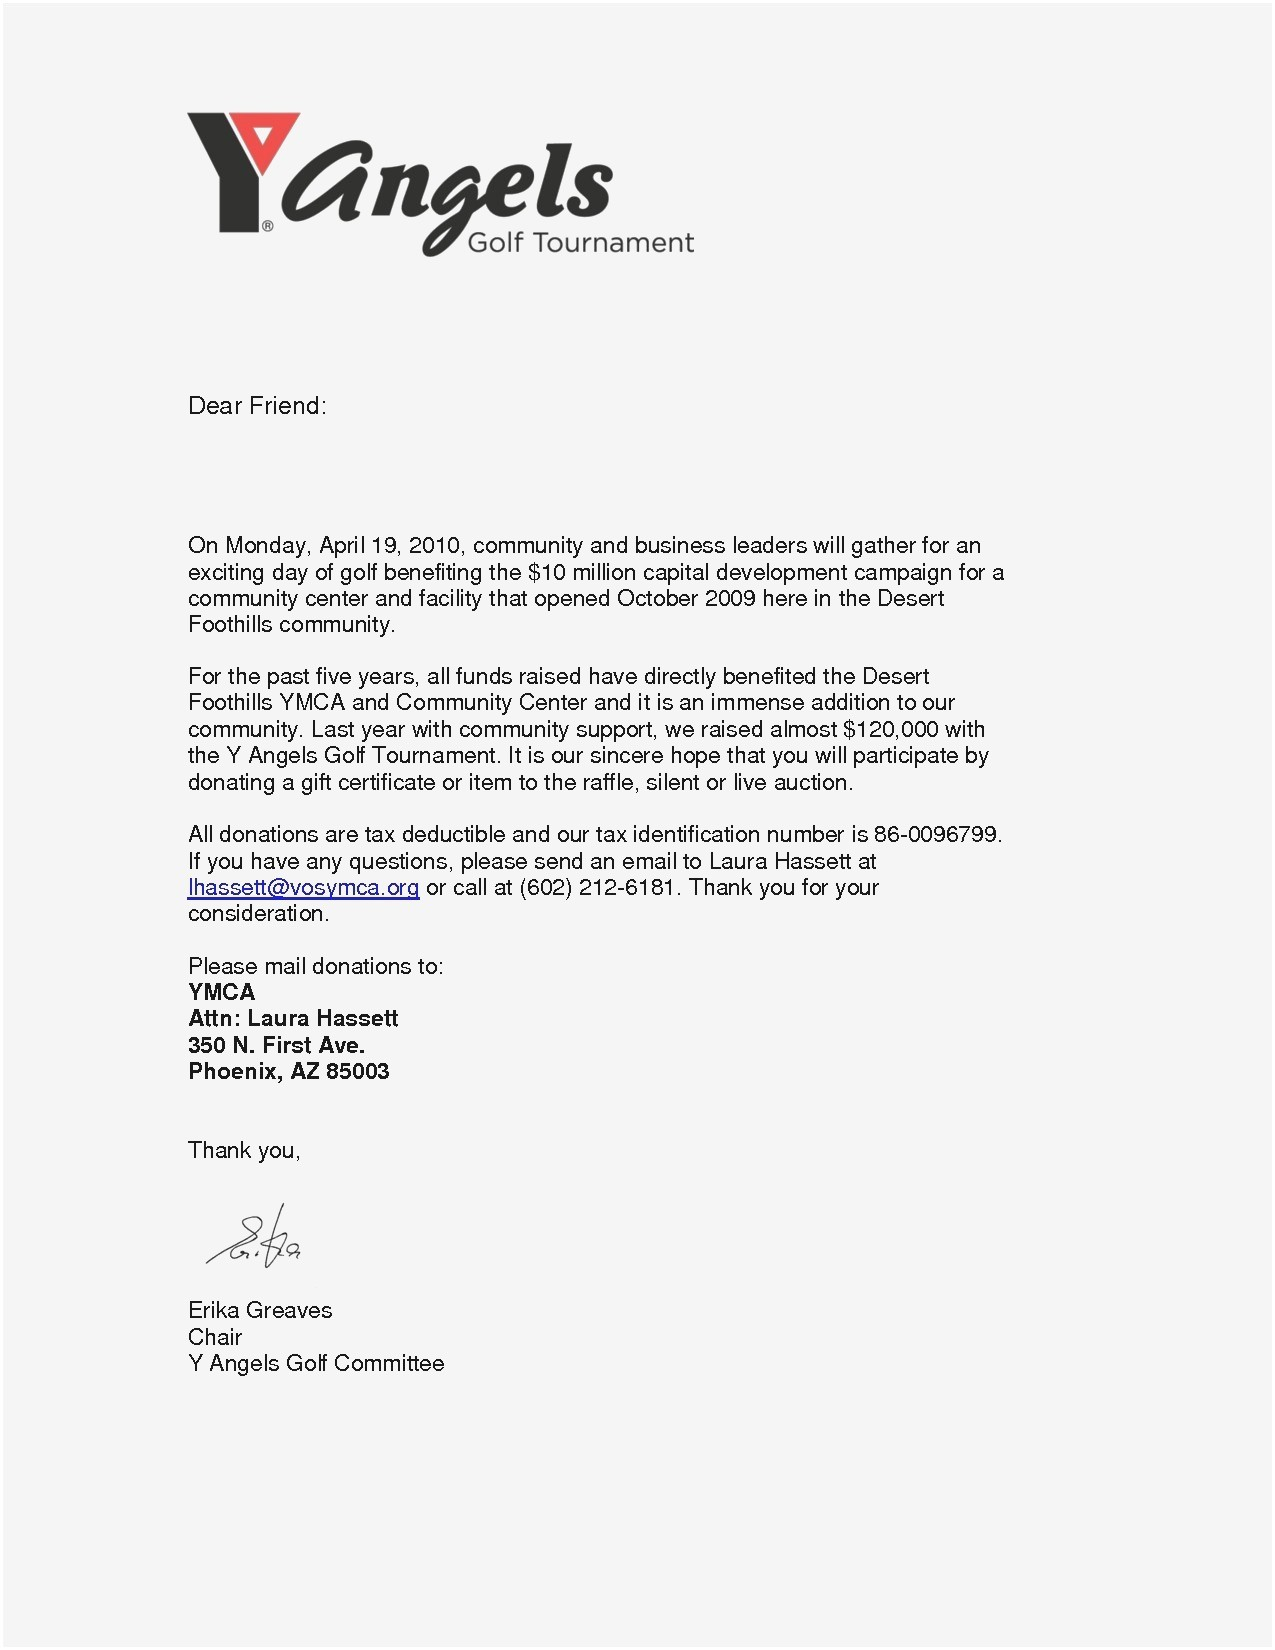 Golf tournament donation letter template collection letter templates golf tournament donation letter template donation request letter template altavistaventures